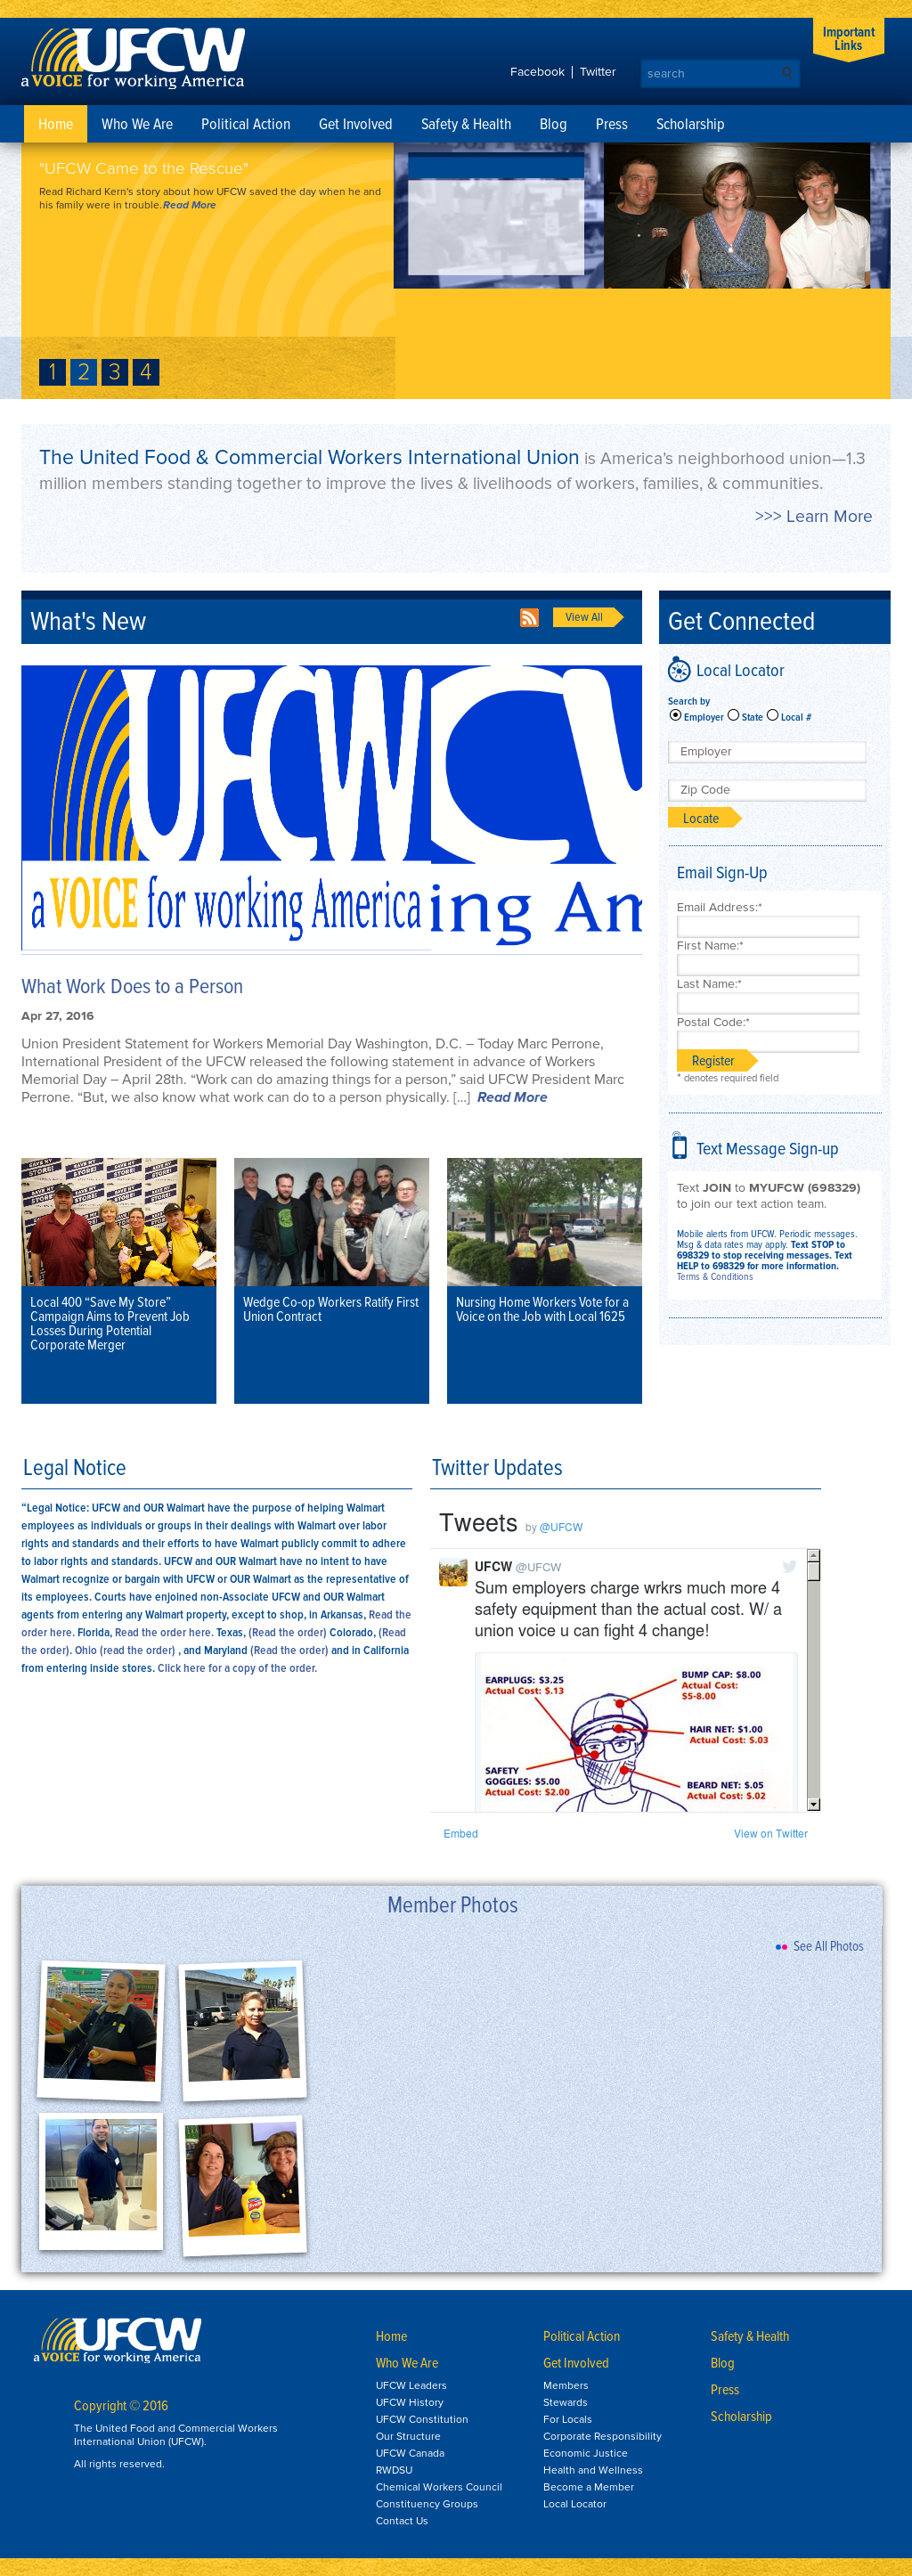 UFCW Competitors, Revenue and Employees - Owler Company Profile